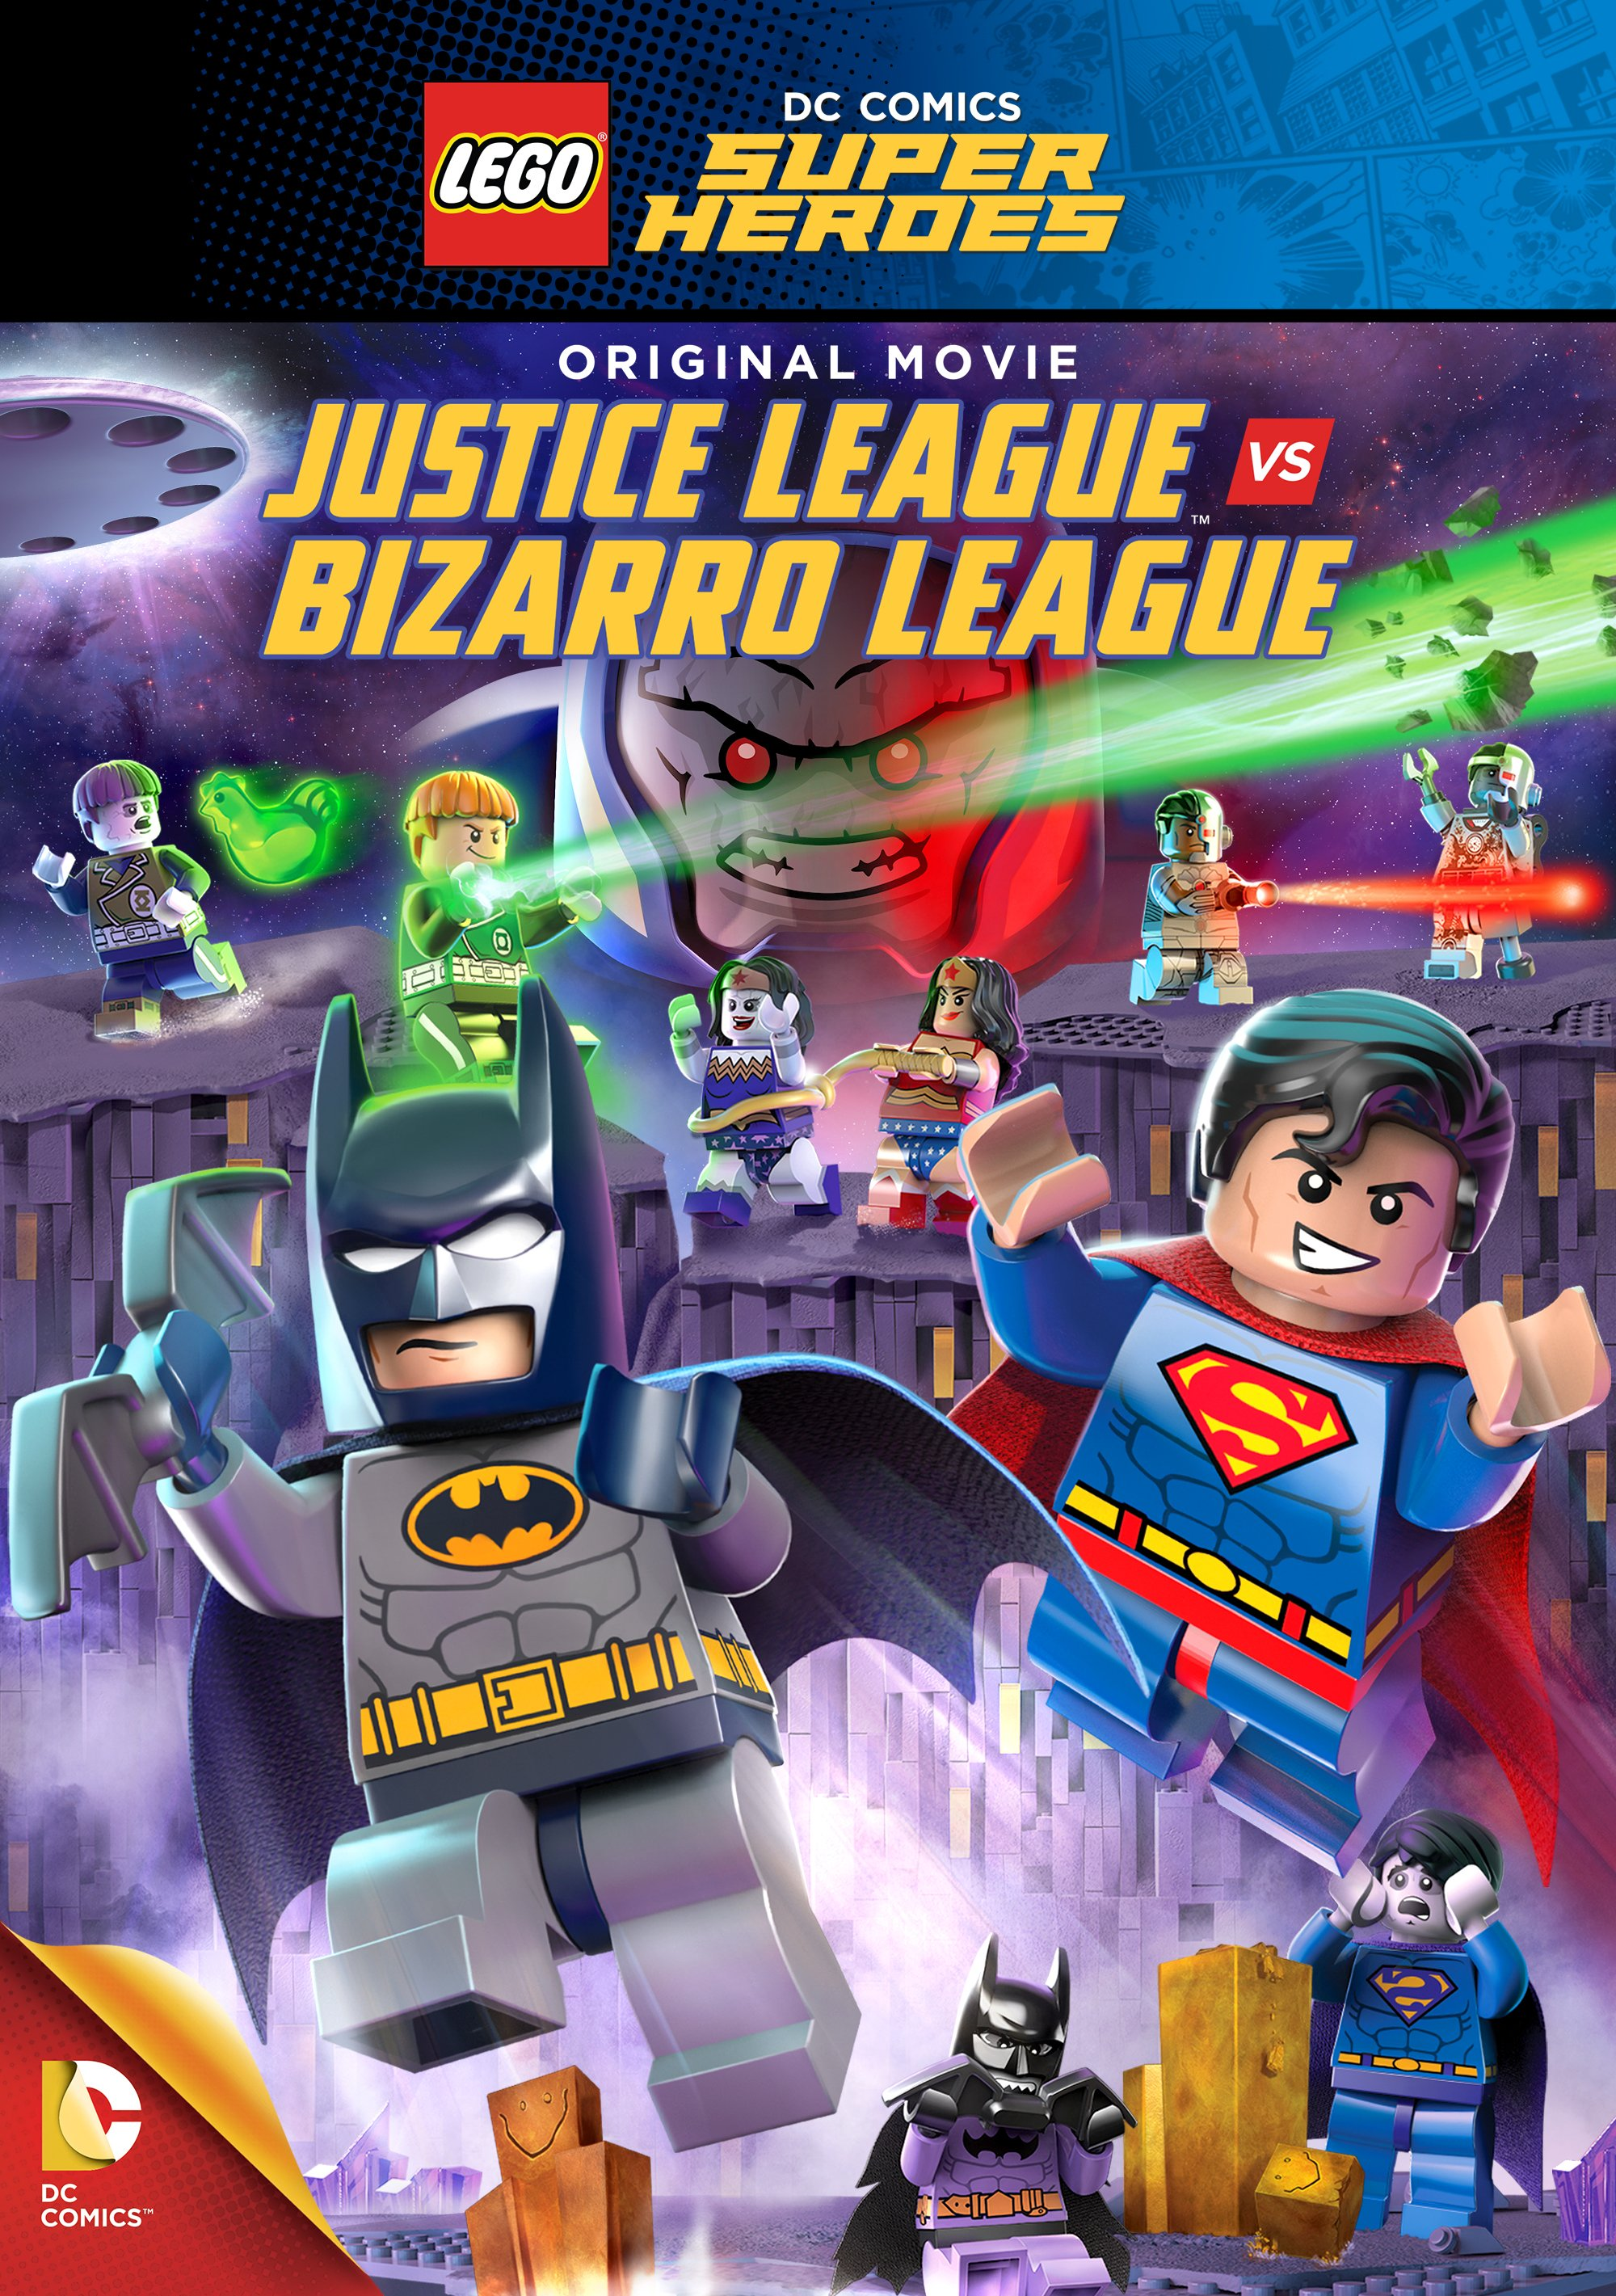 LEGO: Justice League vs Bizarro League